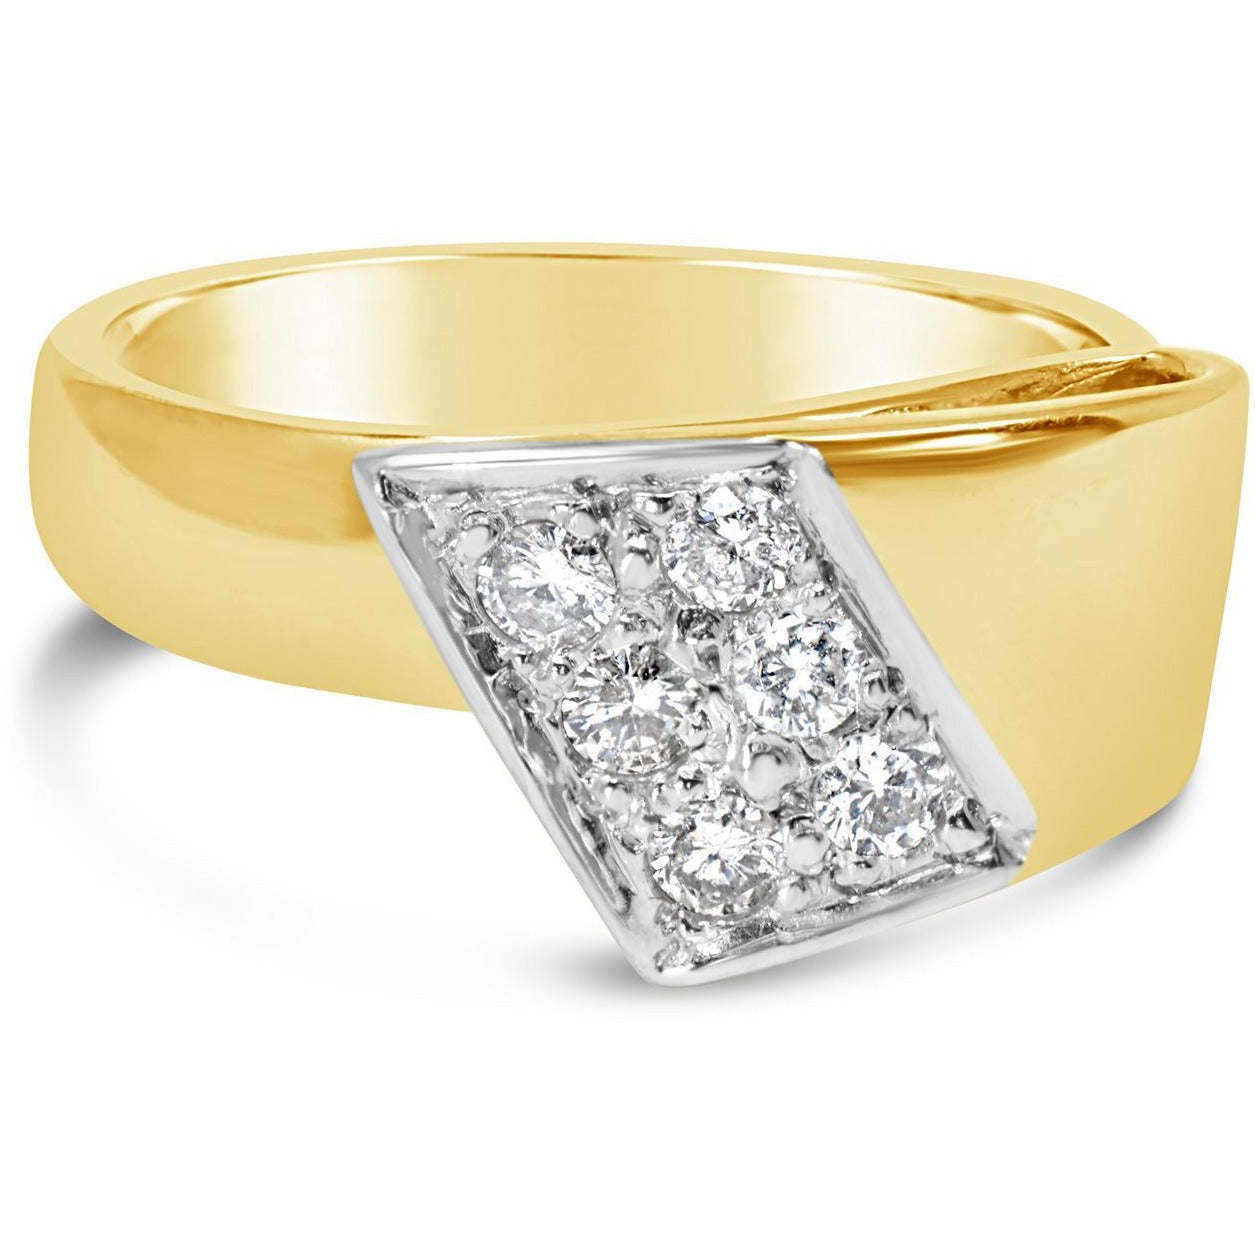 YELLOW GOLD WIDE RIBBON BAND WITH A 1/3CT OF NATURAL EXCELLENT CUT DIAMONDS - G&S Diamonds